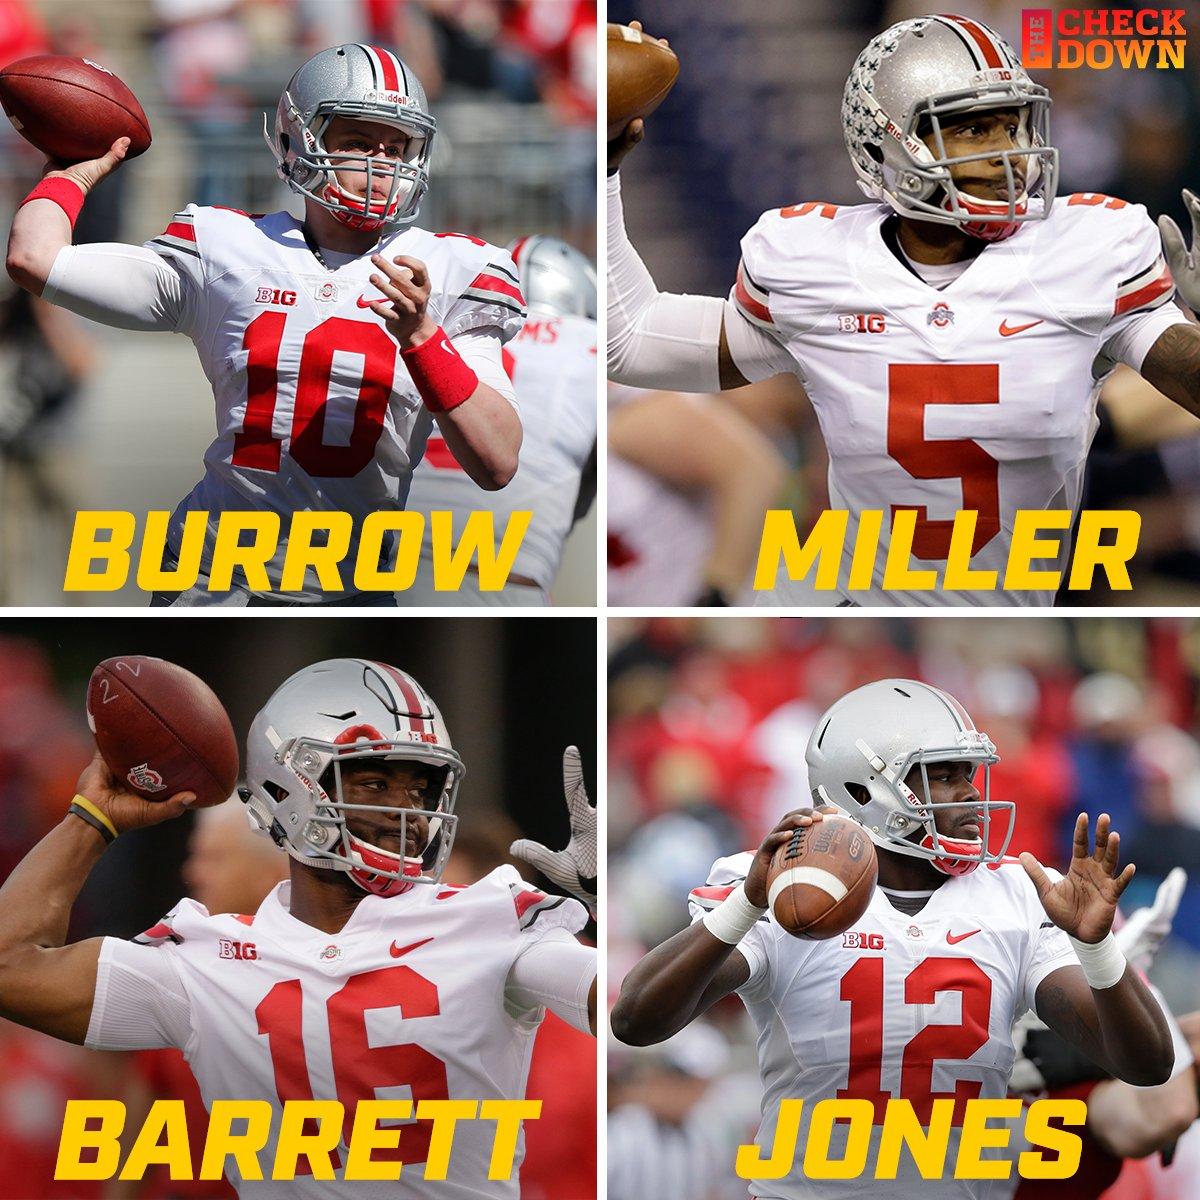 Ohio State's QB room in 2015 was STACKED  @OhioStateFB<br>http://pic.twitter.com/EotVSZodBj